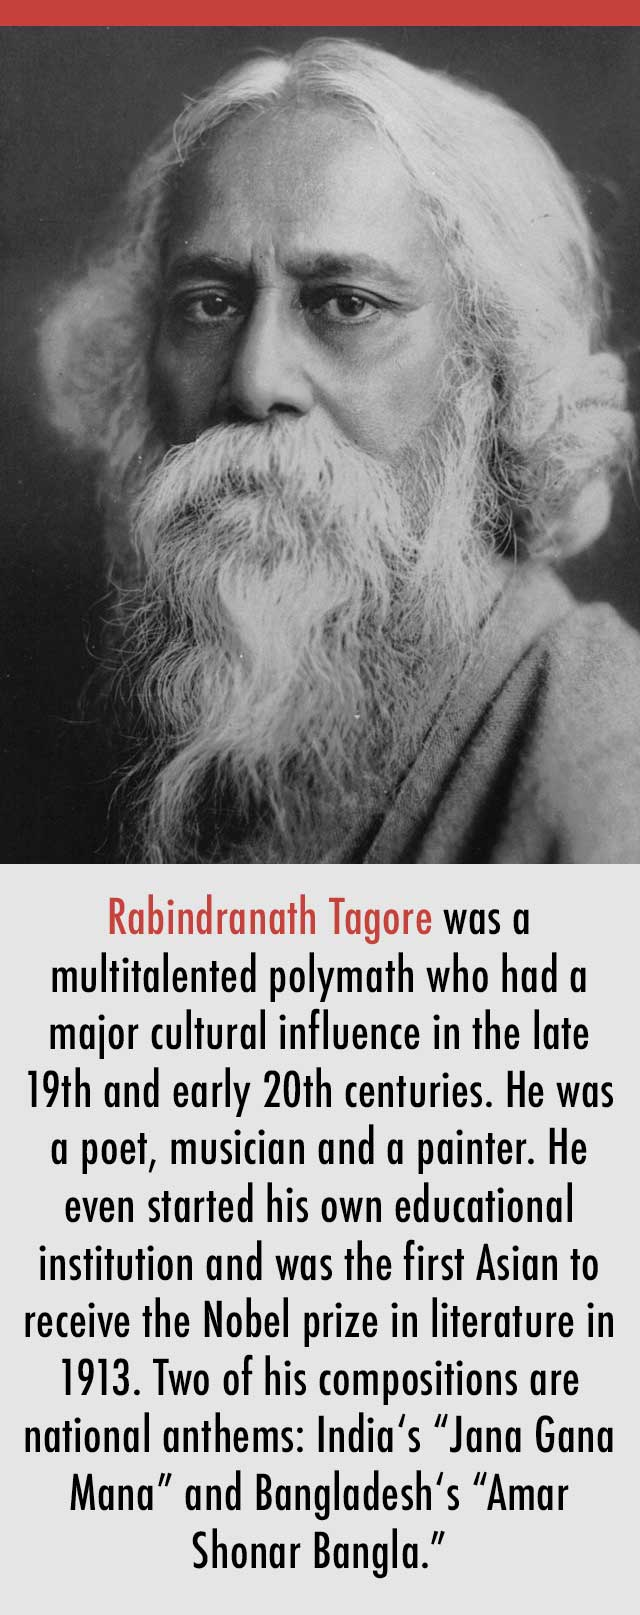 "Rabindranath Tagore was a multitalented polymath who had a major cultural influence in the late 19th and early 20th centuries. He was a poet, musician and a painter. He even started his own educational institution and was the first Asian to receive the Nobel prize in literature in 1913. Two of his compositions are national anthems: India's ""Jana Gana Mana"" and Bangladesh's ""Amar Shonar Bangla."""